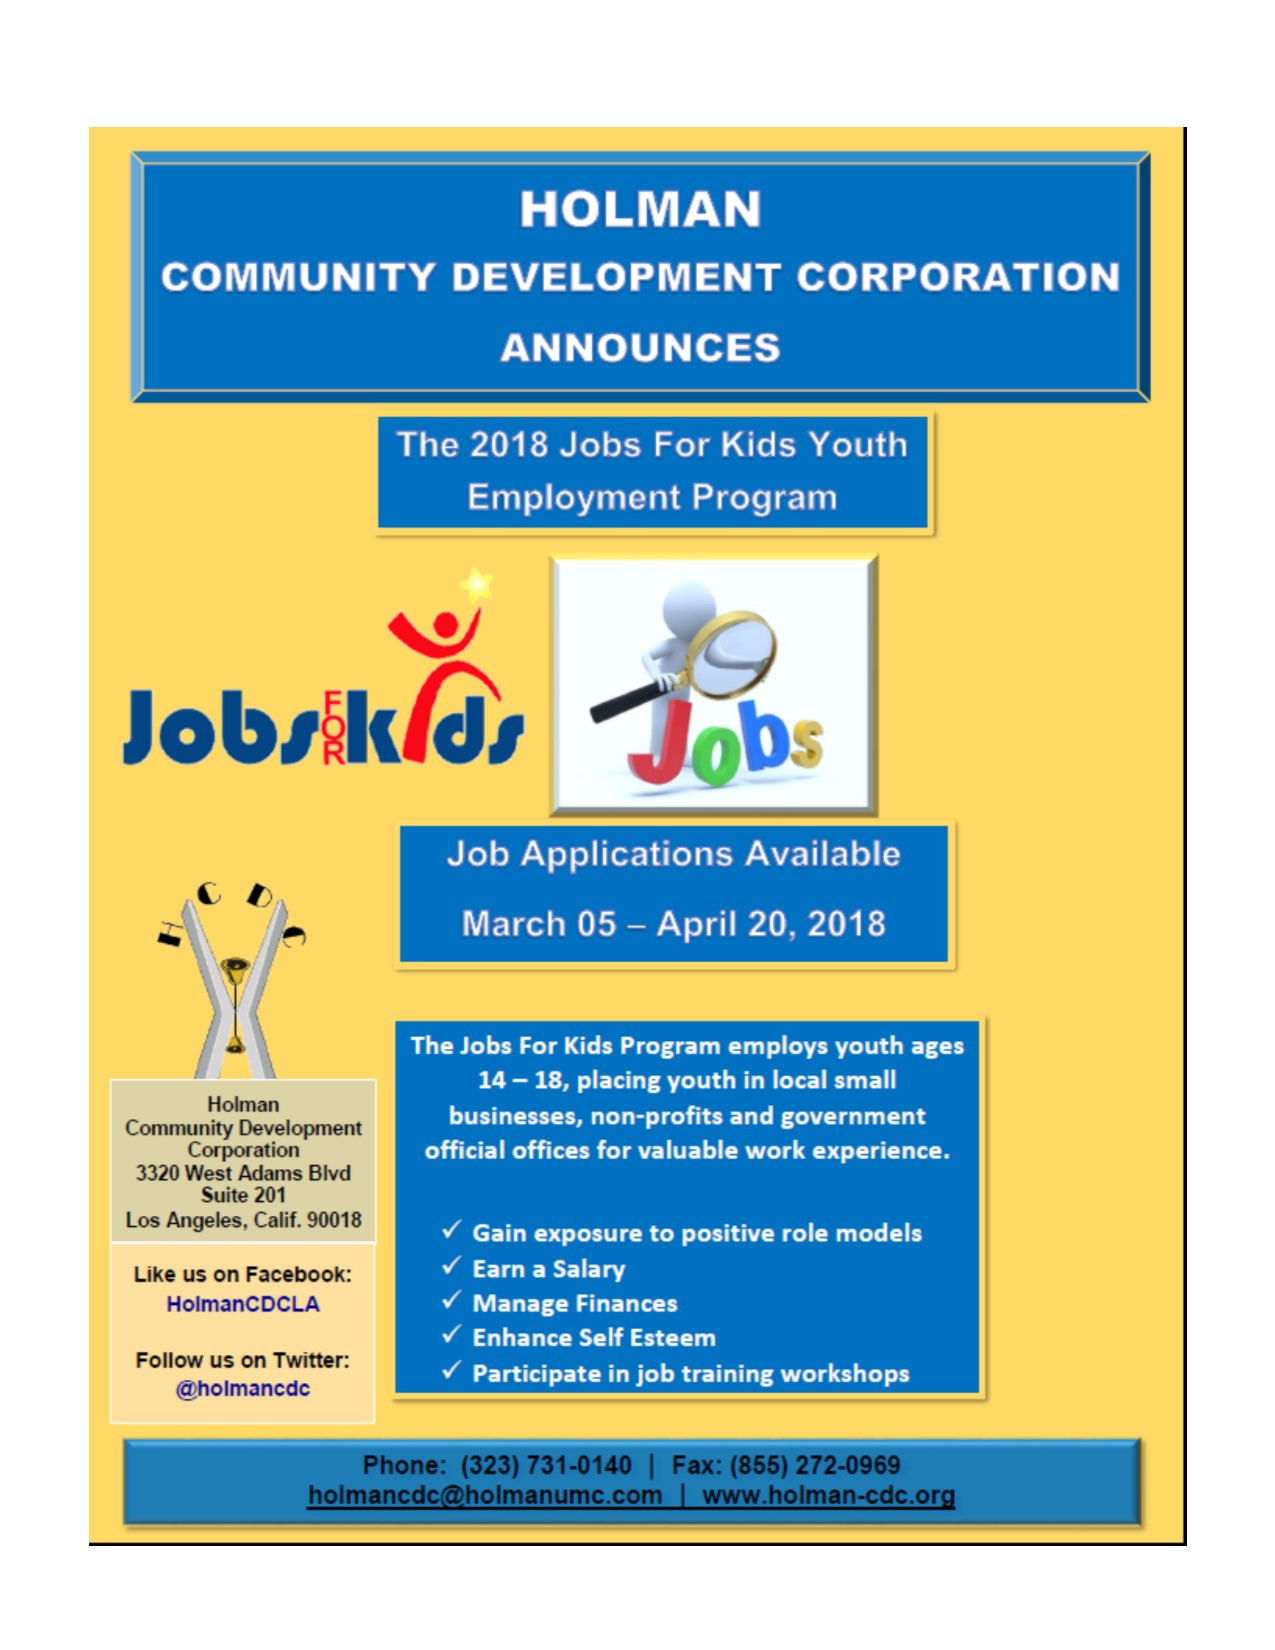 JOBS FOR KIDS JOB APPLICATIONS GO LIVE… MARCH 5th – APRIL